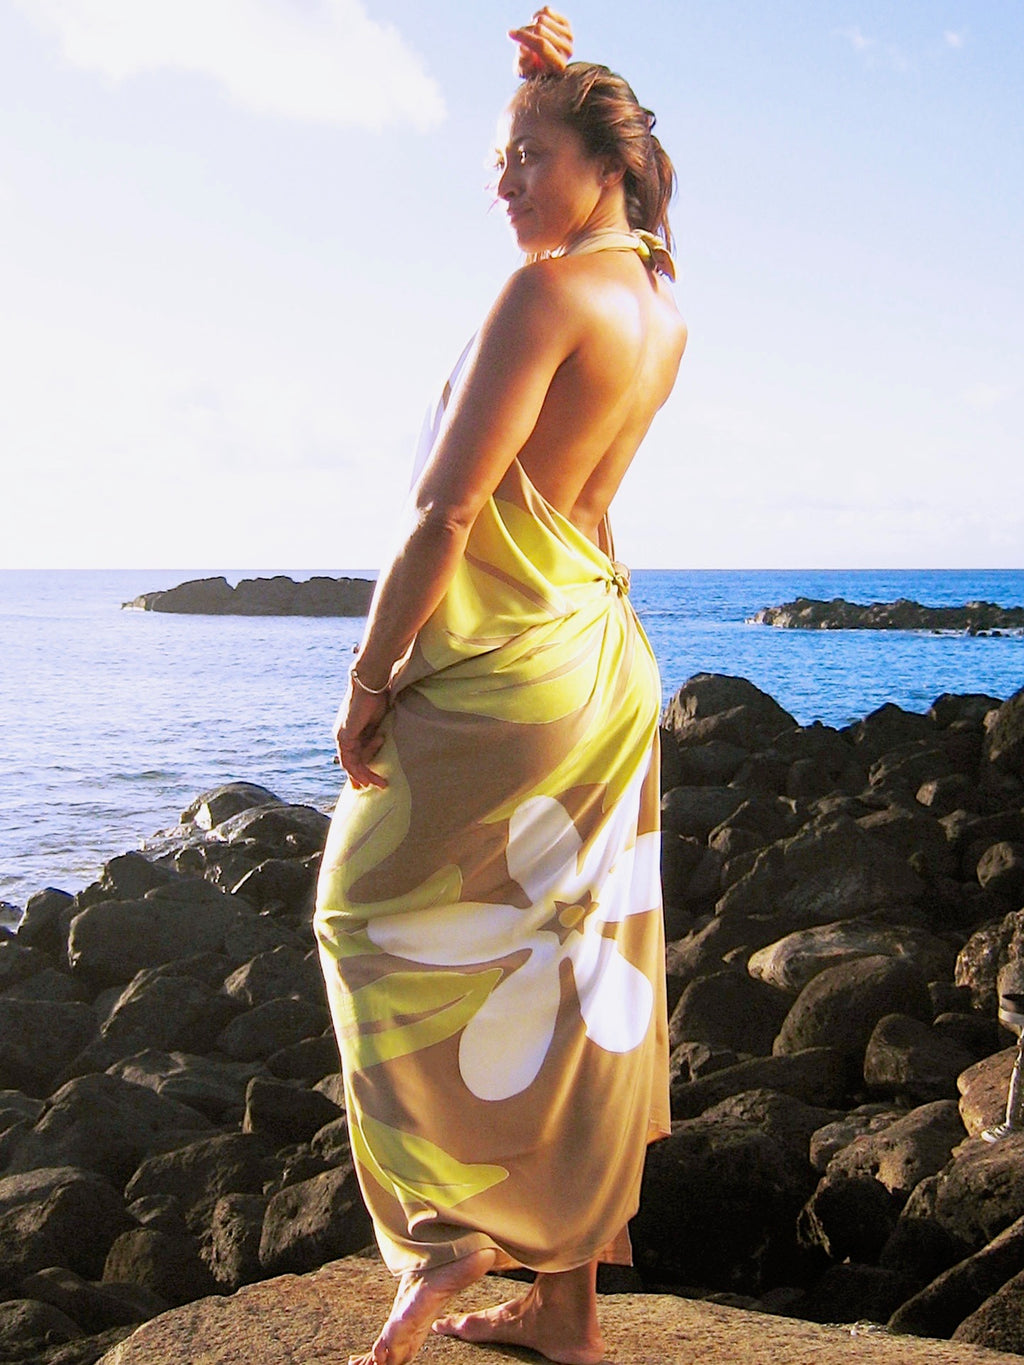 TIARE PAREO, TIARE, LATTE, BEACH PAREO, BEACH SARONG, HAWAIIAN PAREO, MAUI PAREO, HAWAII PAREO, HAWAII SARONG, ALOHA GIFT, TIARE GIFT, HULA, TAHITIAN, HULA DANDE, HULA COSTUME, TAHITIAN COSTUME